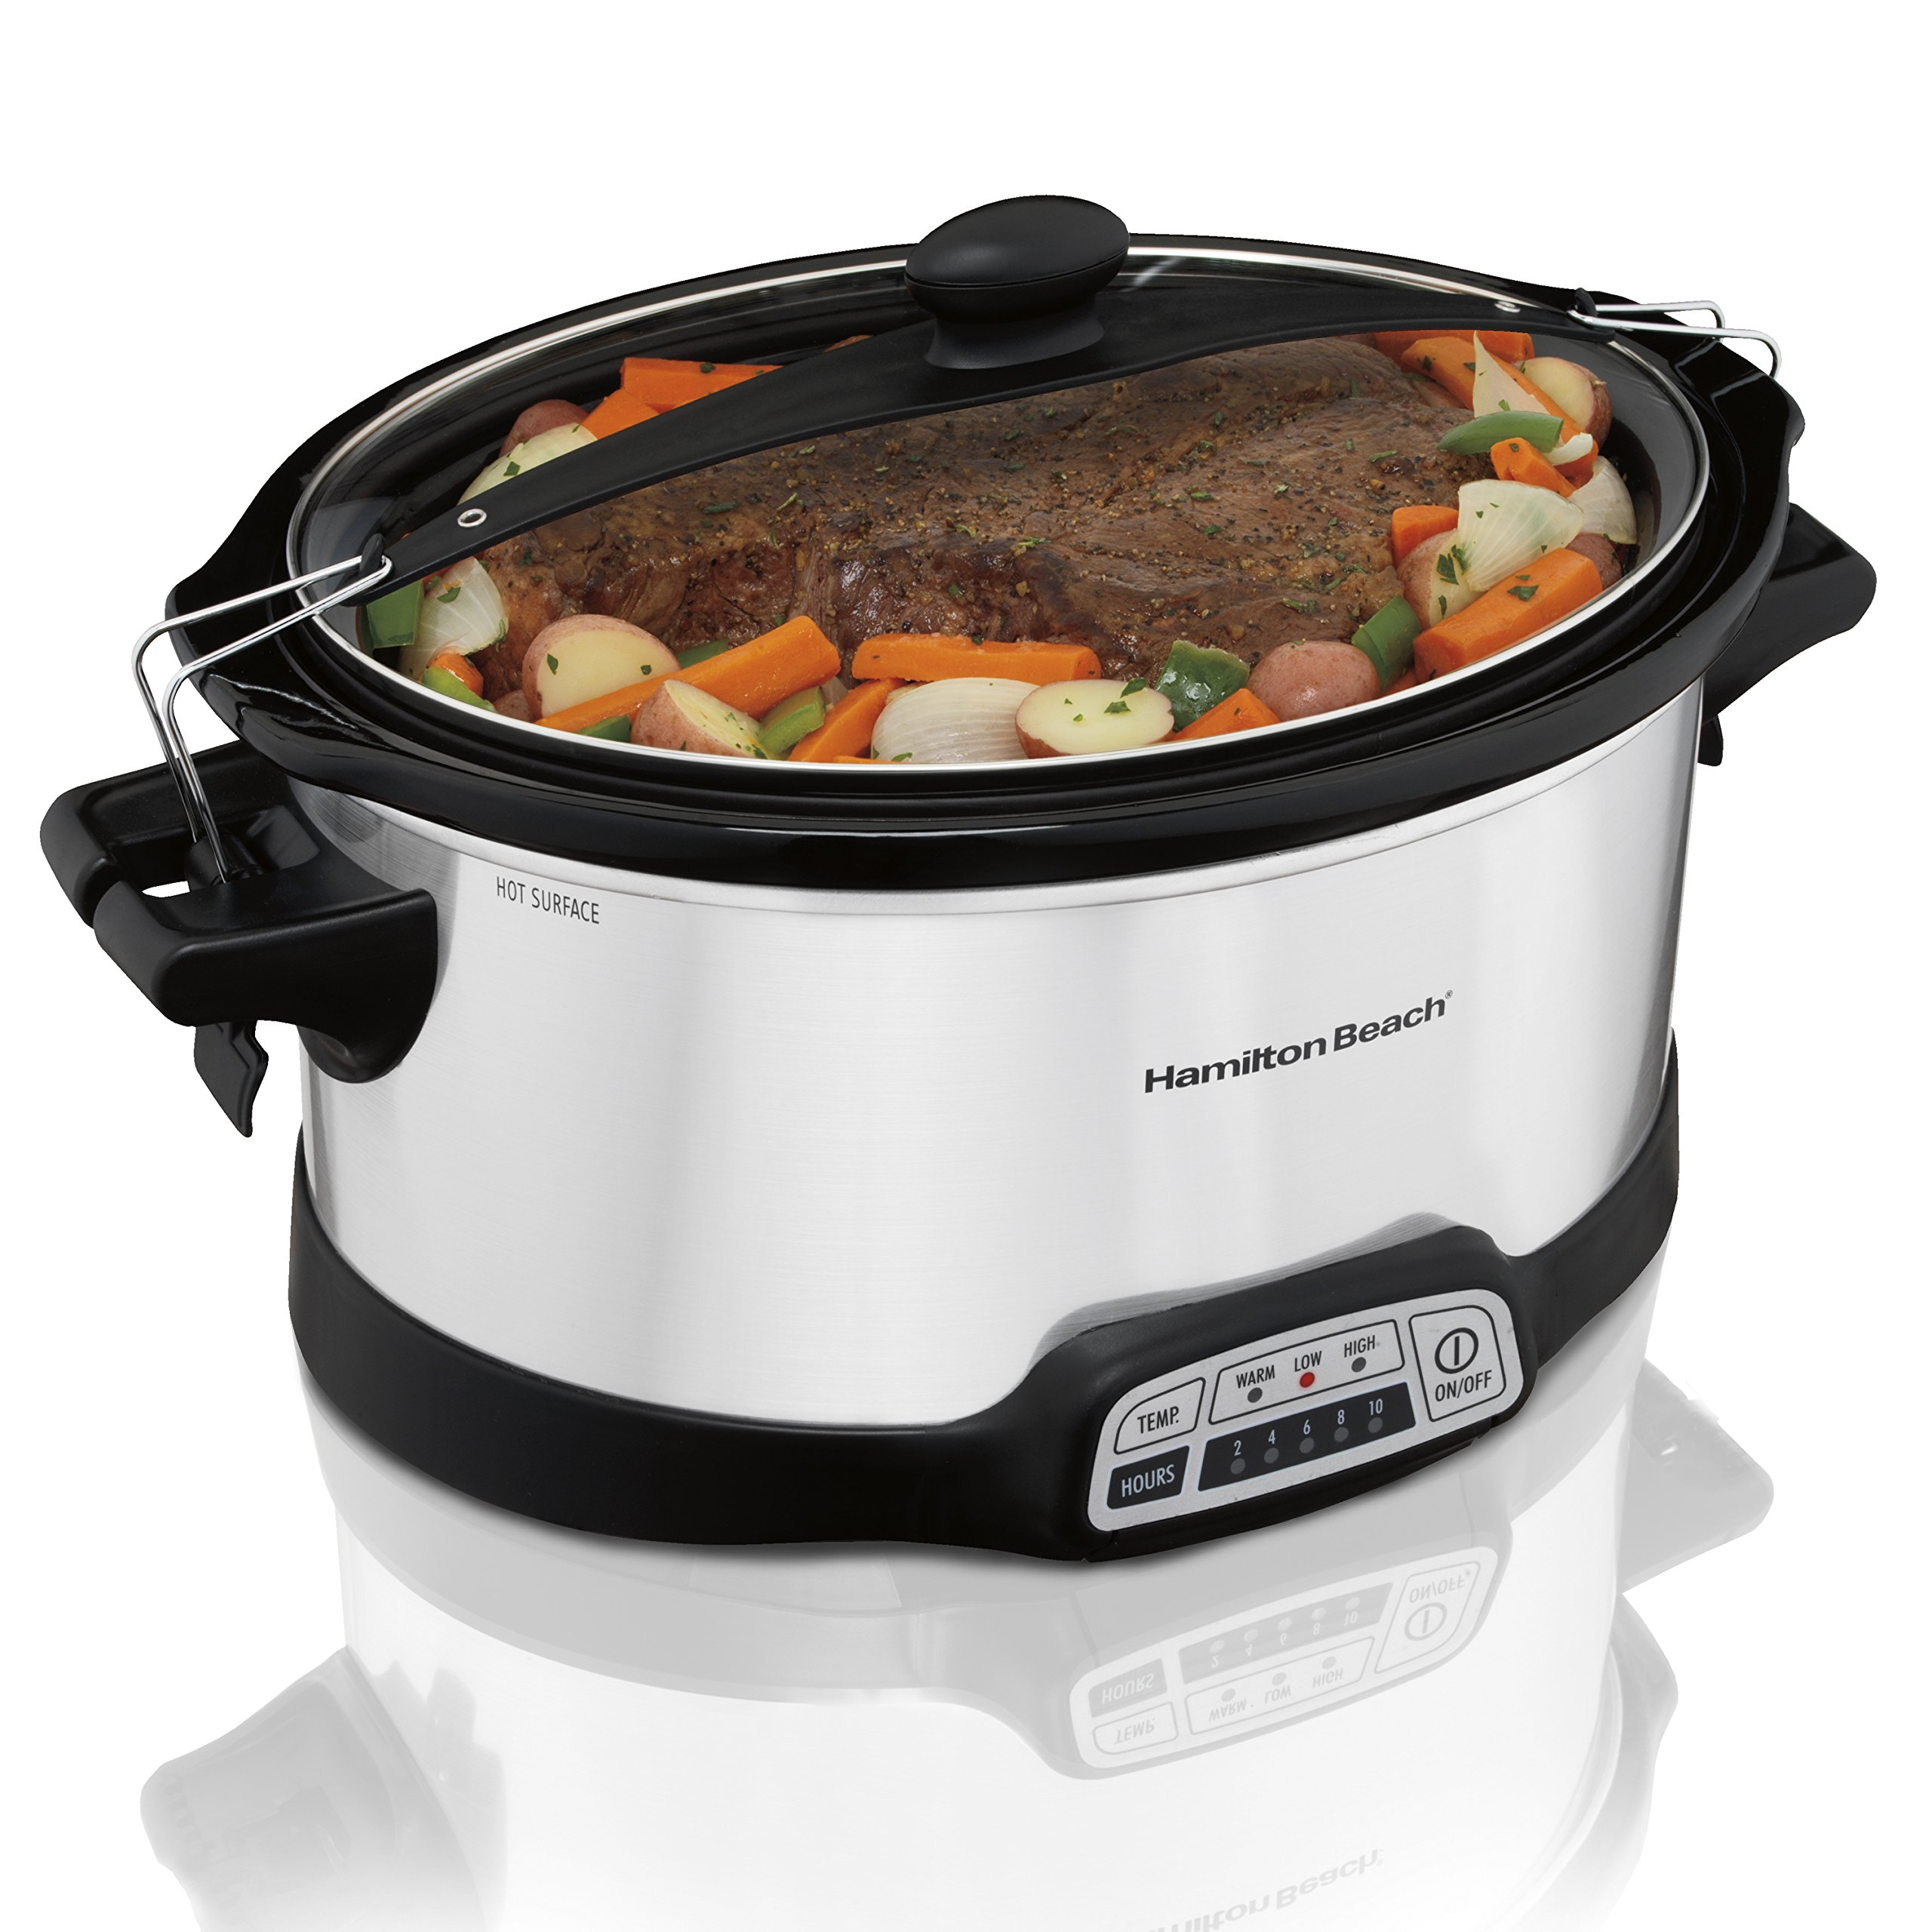 Hamilton Beach Programmable Slow Cooker, 7 quart with Clip-Tight Sealed Lid, Stainless Steel (33476), Silver by Hamilton Beach